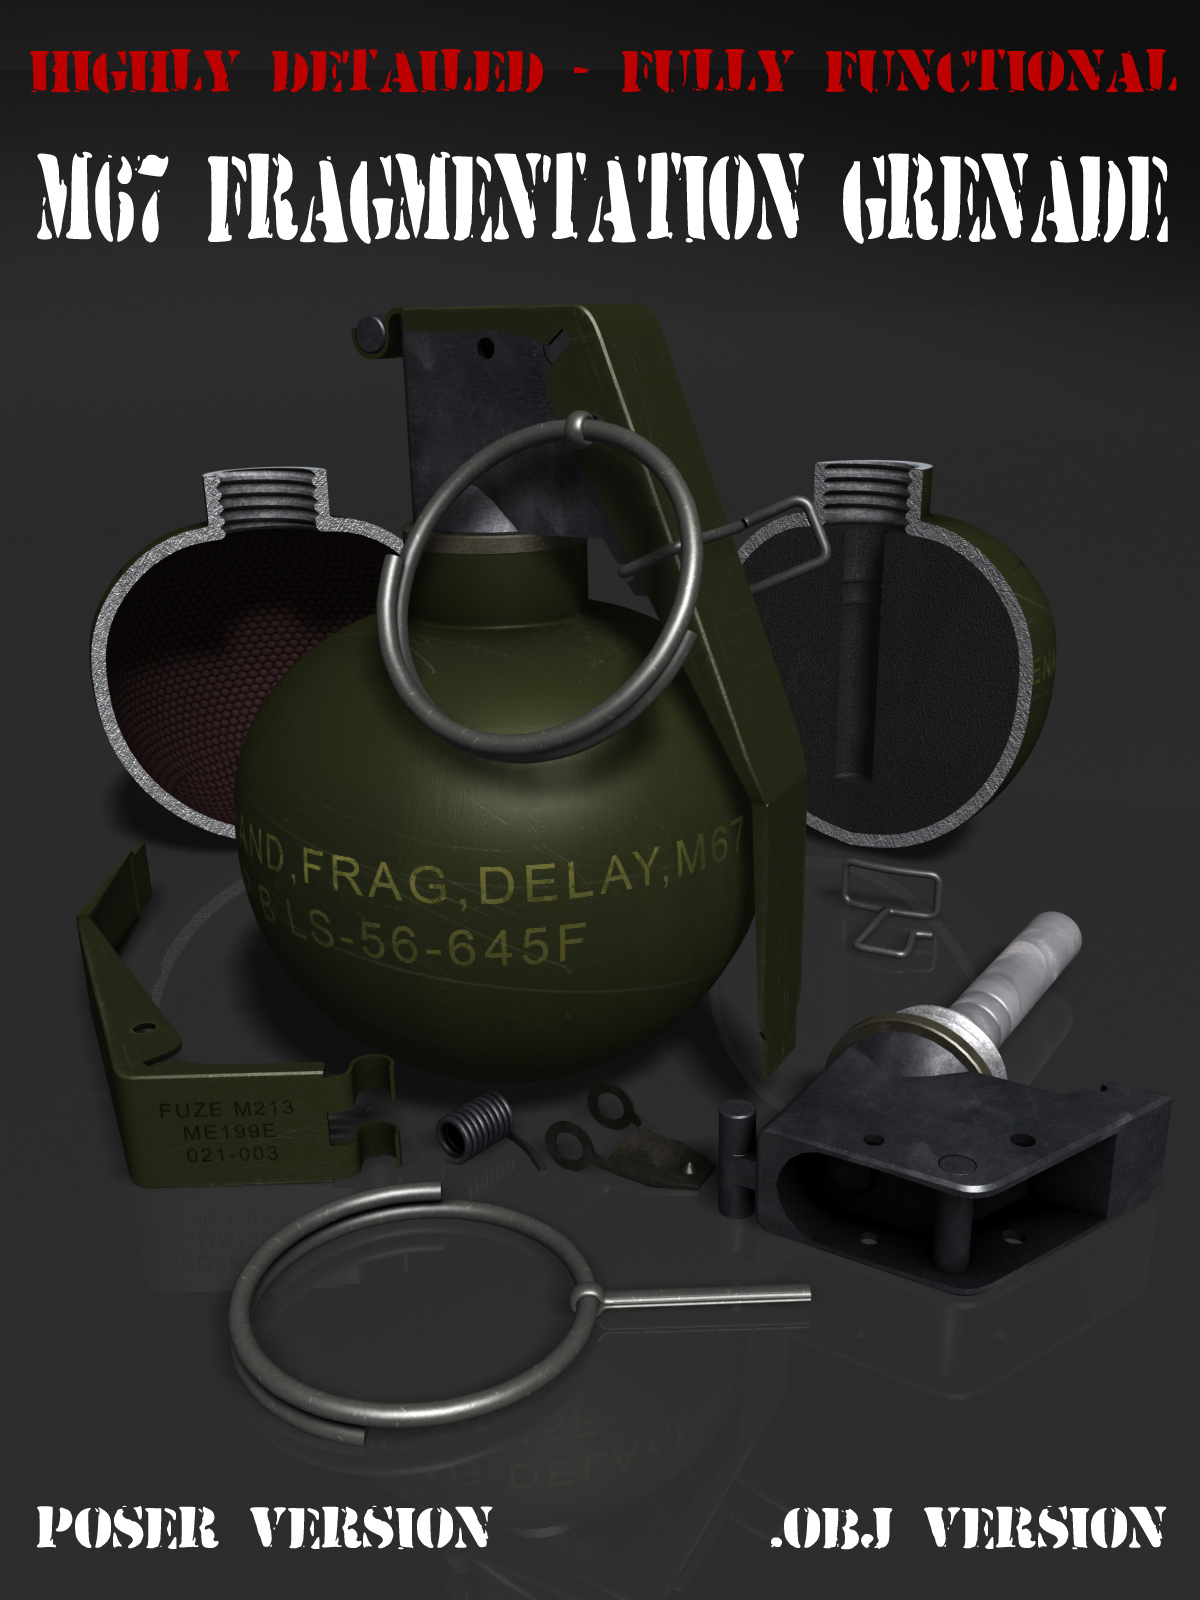 Detailed Hand Grenade